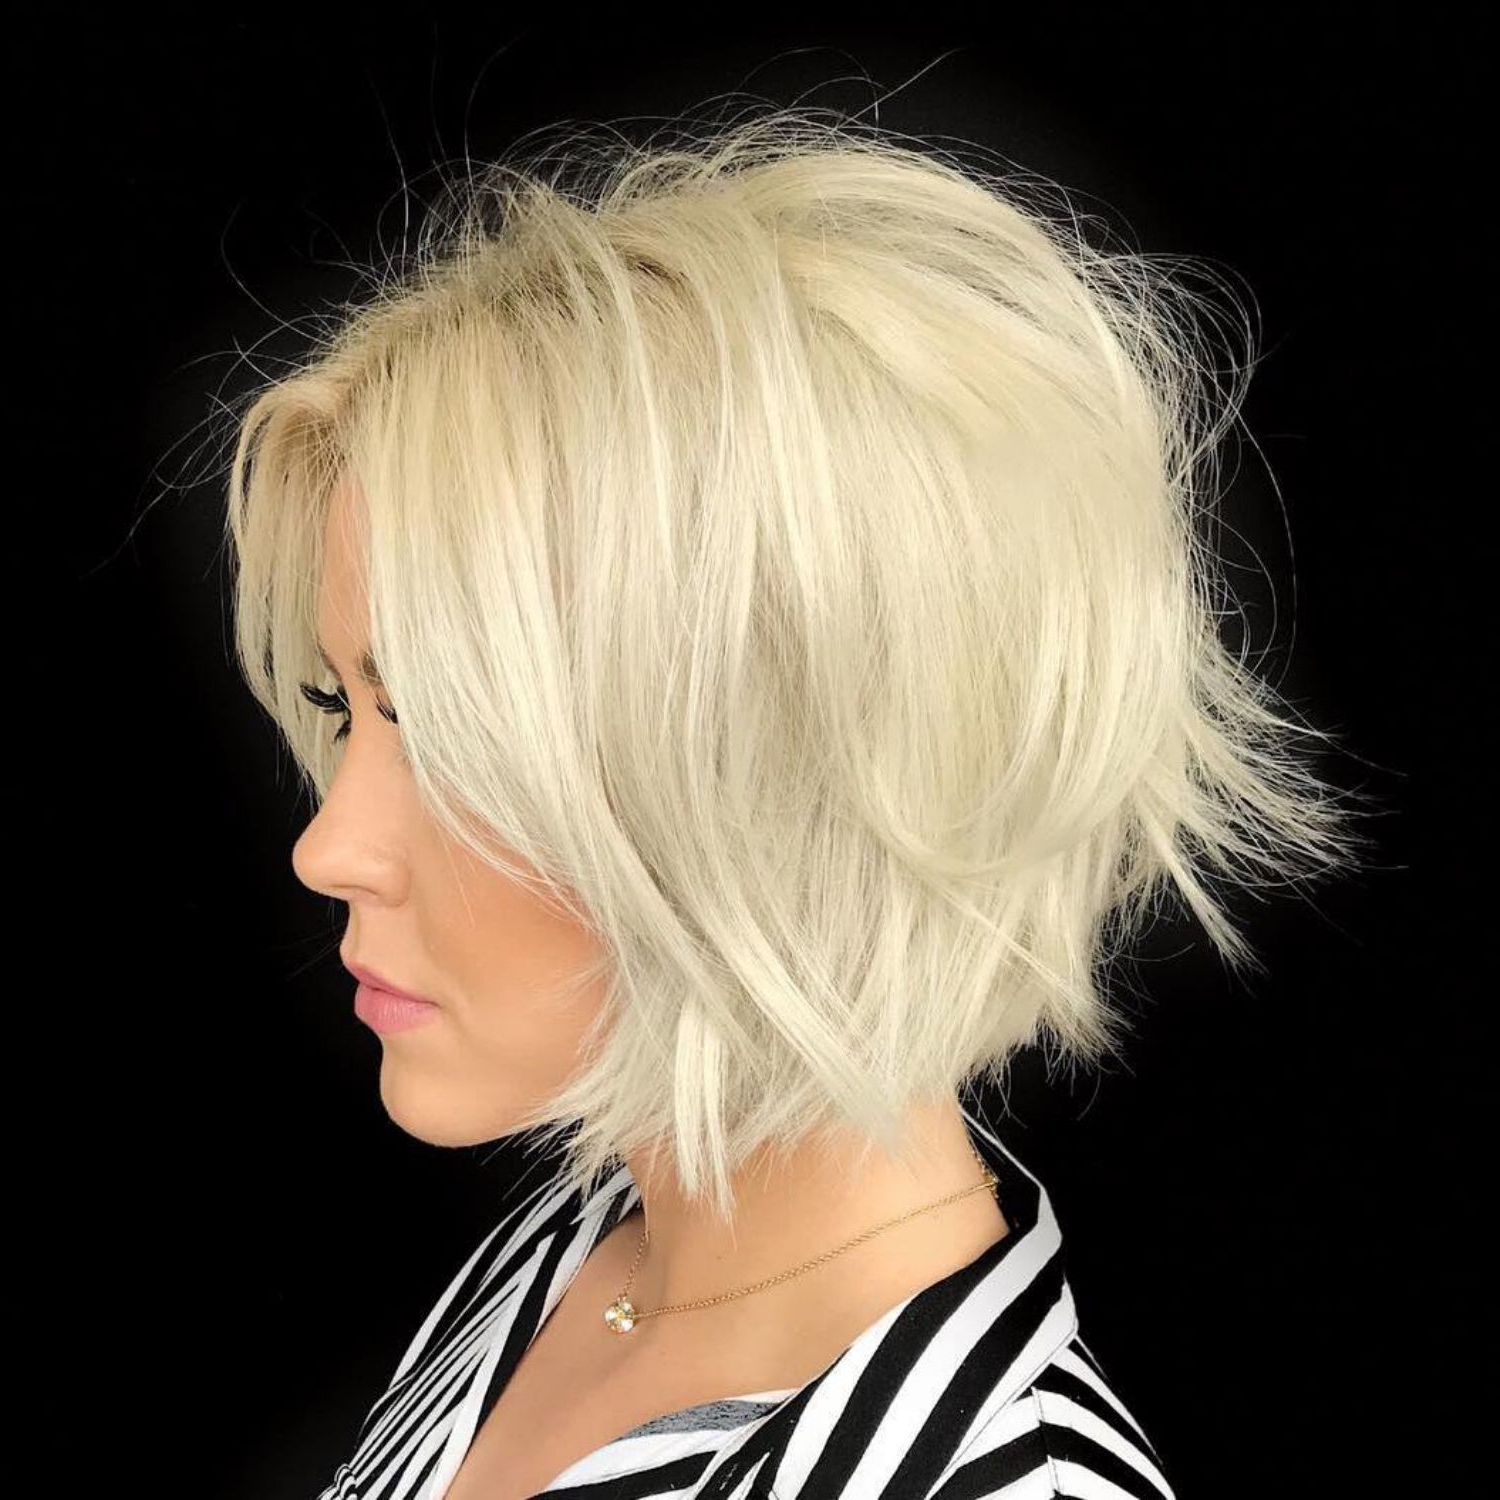 100 Mind Blowing Short Hairstyles For Fine Hair | Hair | Pinterest Inside Hazel Blonde Razored Bob Hairstyles (View 2 of 20)